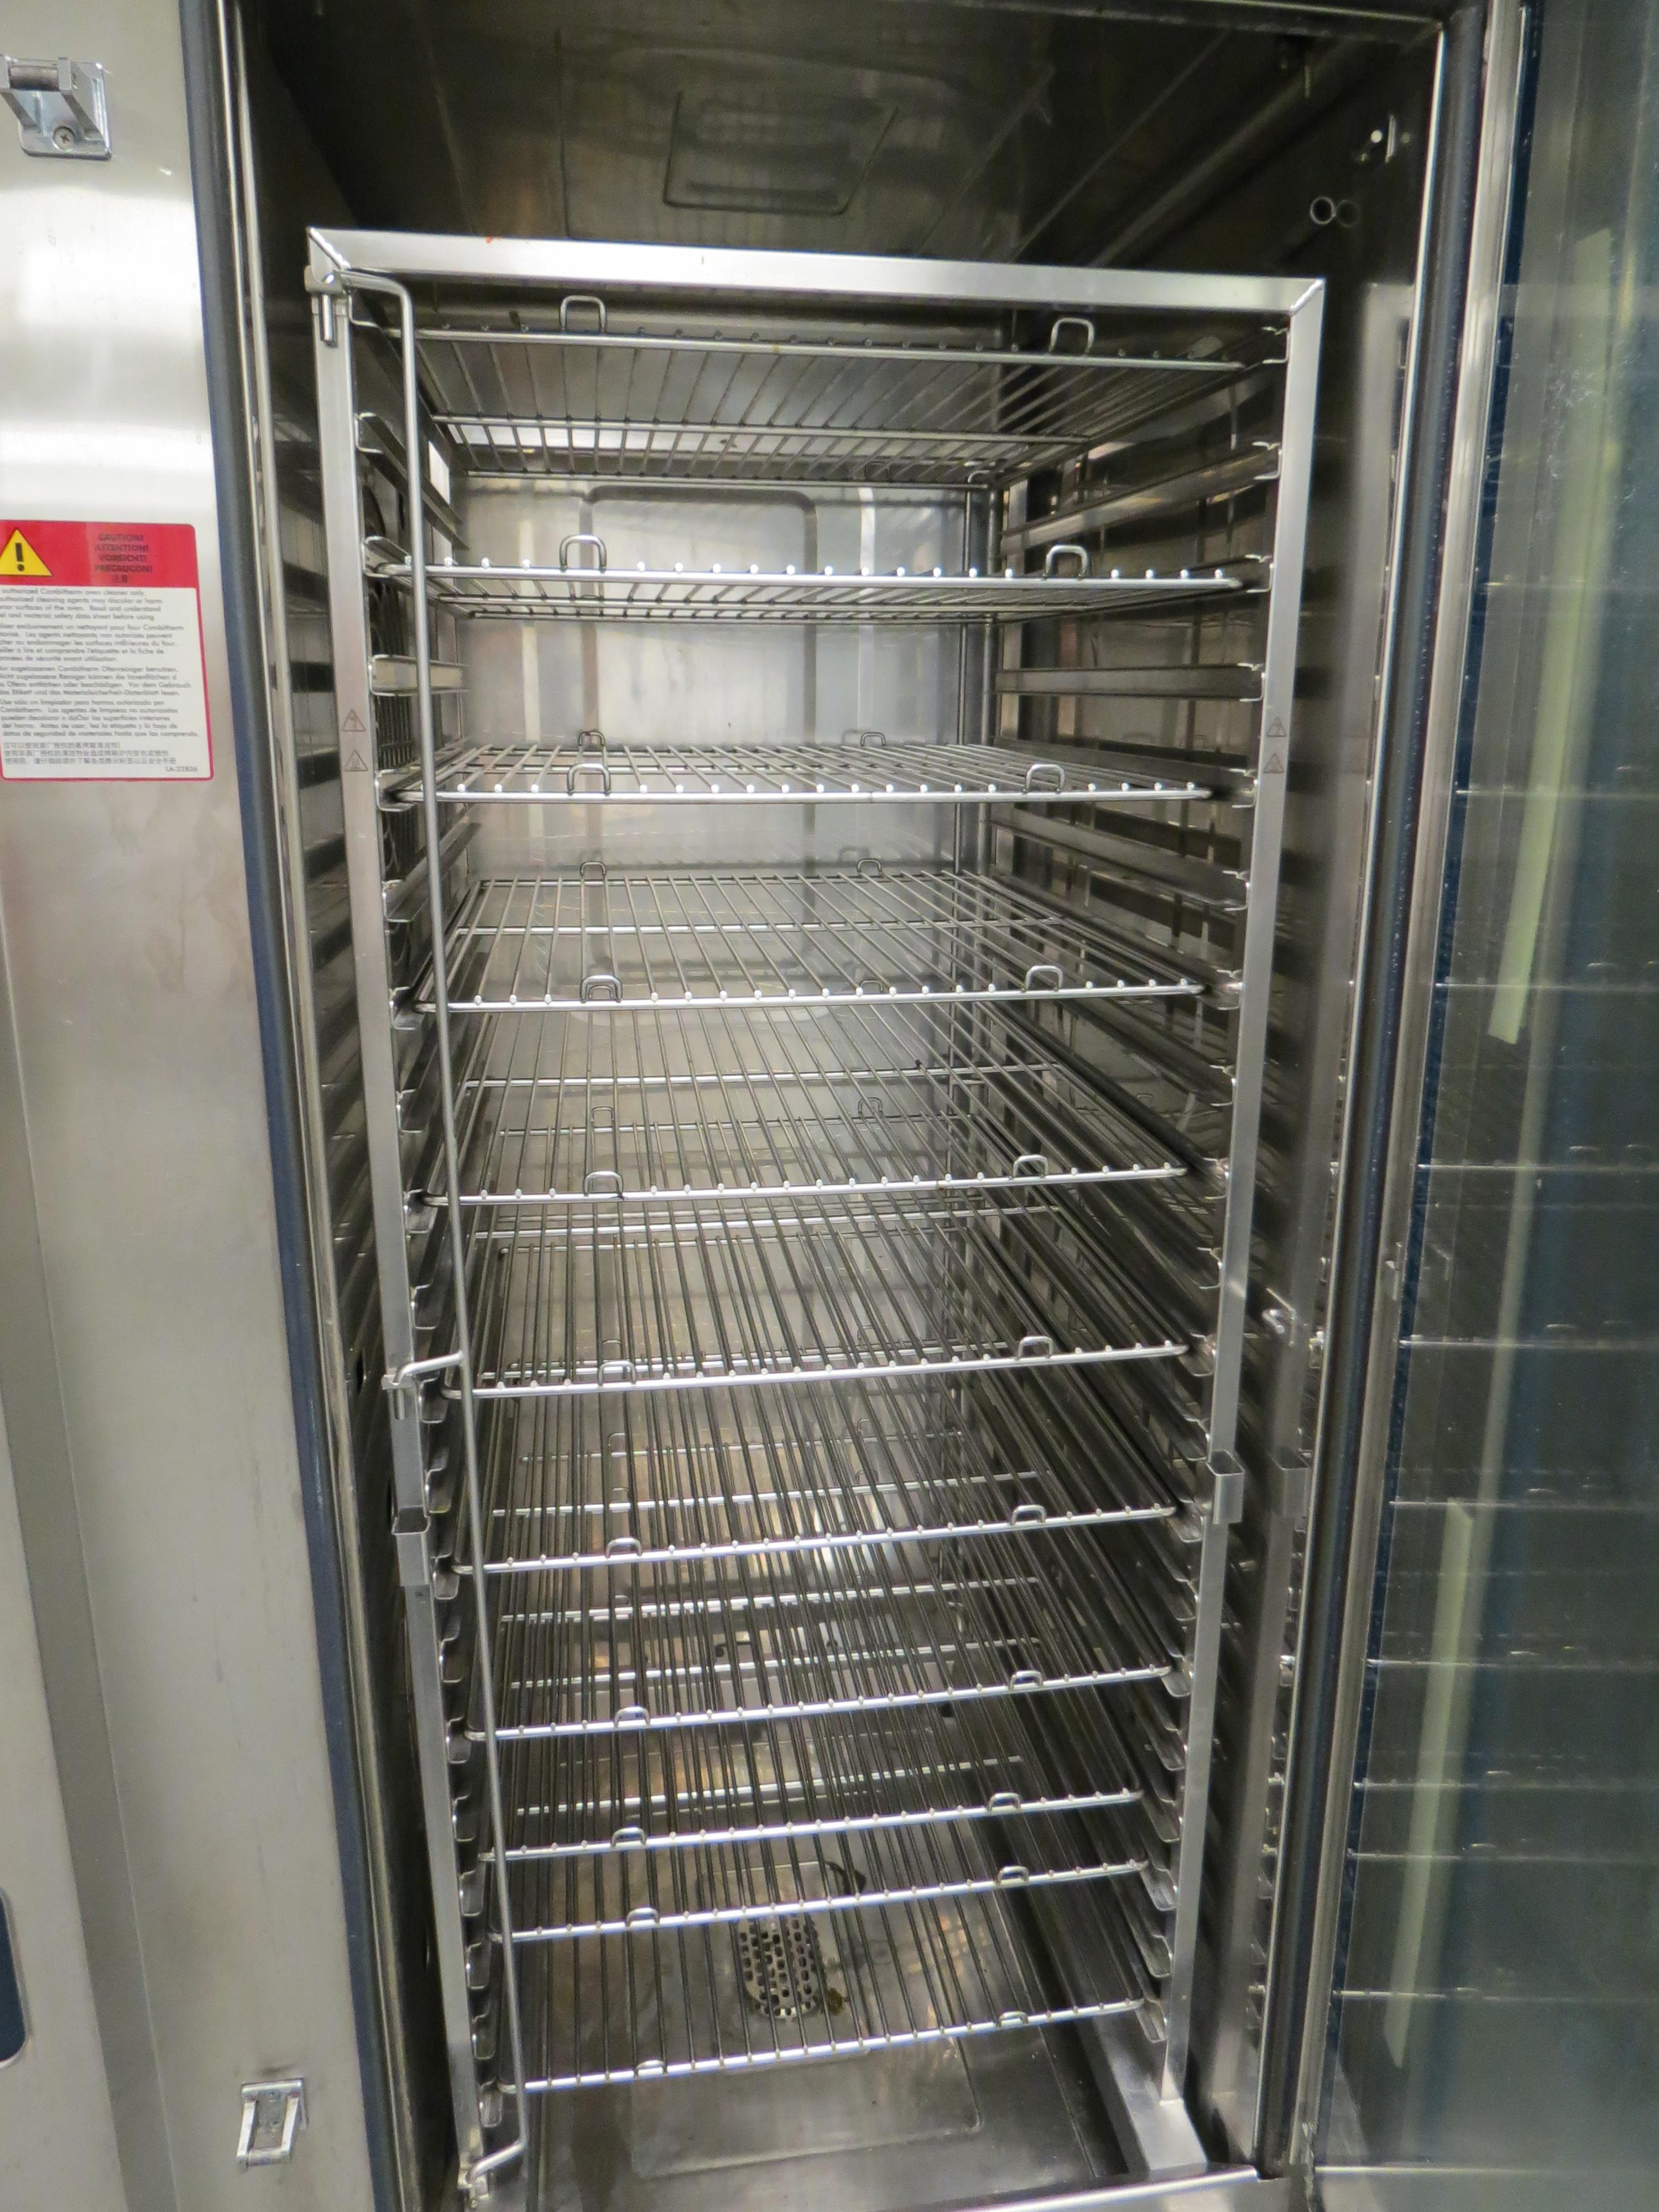 Lot 5 - ALTO-SHAAM MDL. CTP20-20G COMBI OVEN, SN: 1599150-000, W/ ROLLING RACK